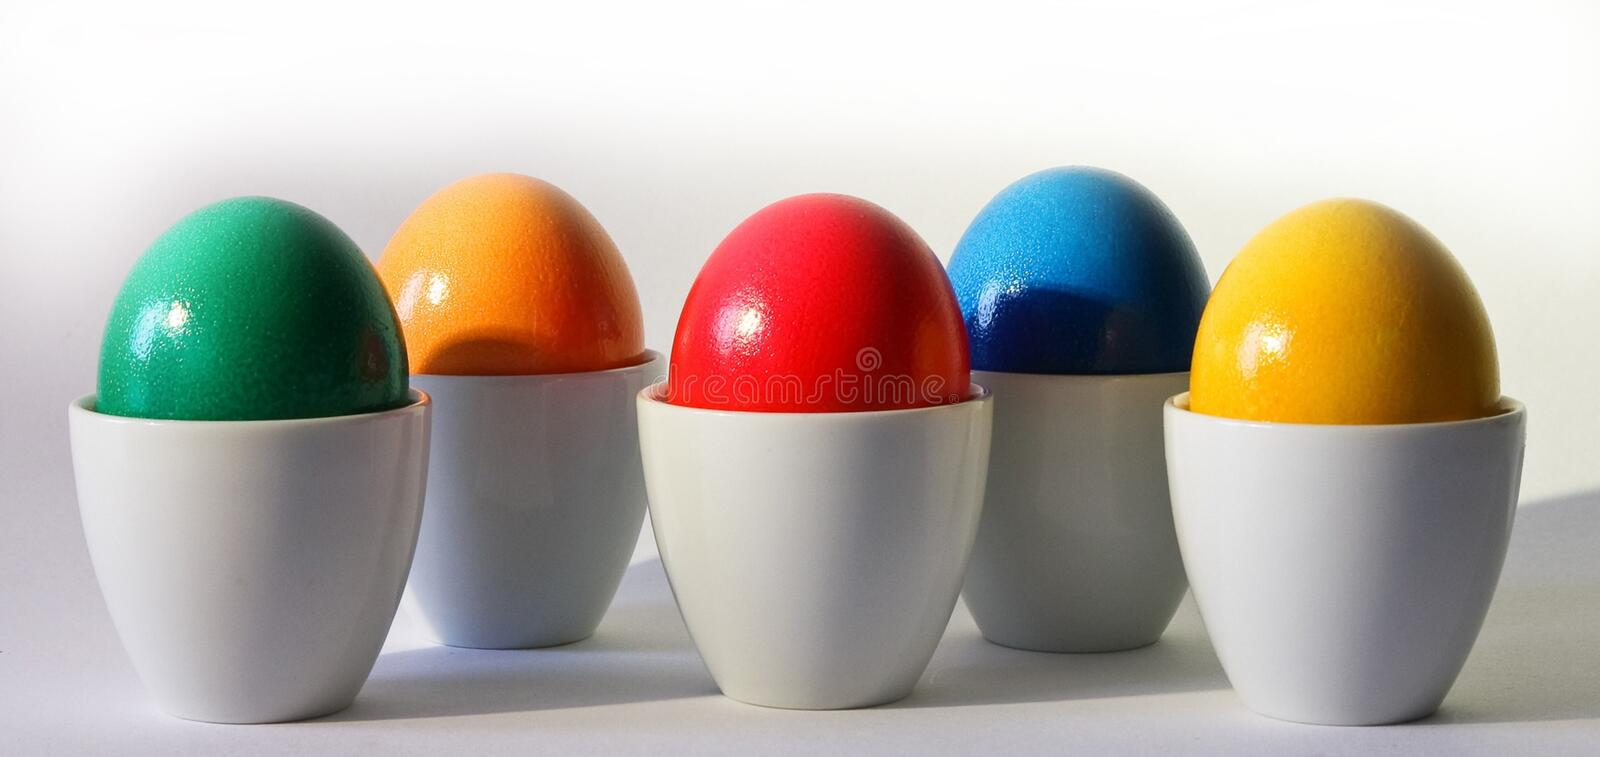 Multicolored Egg Ornament on White Desk royalty free stock photography